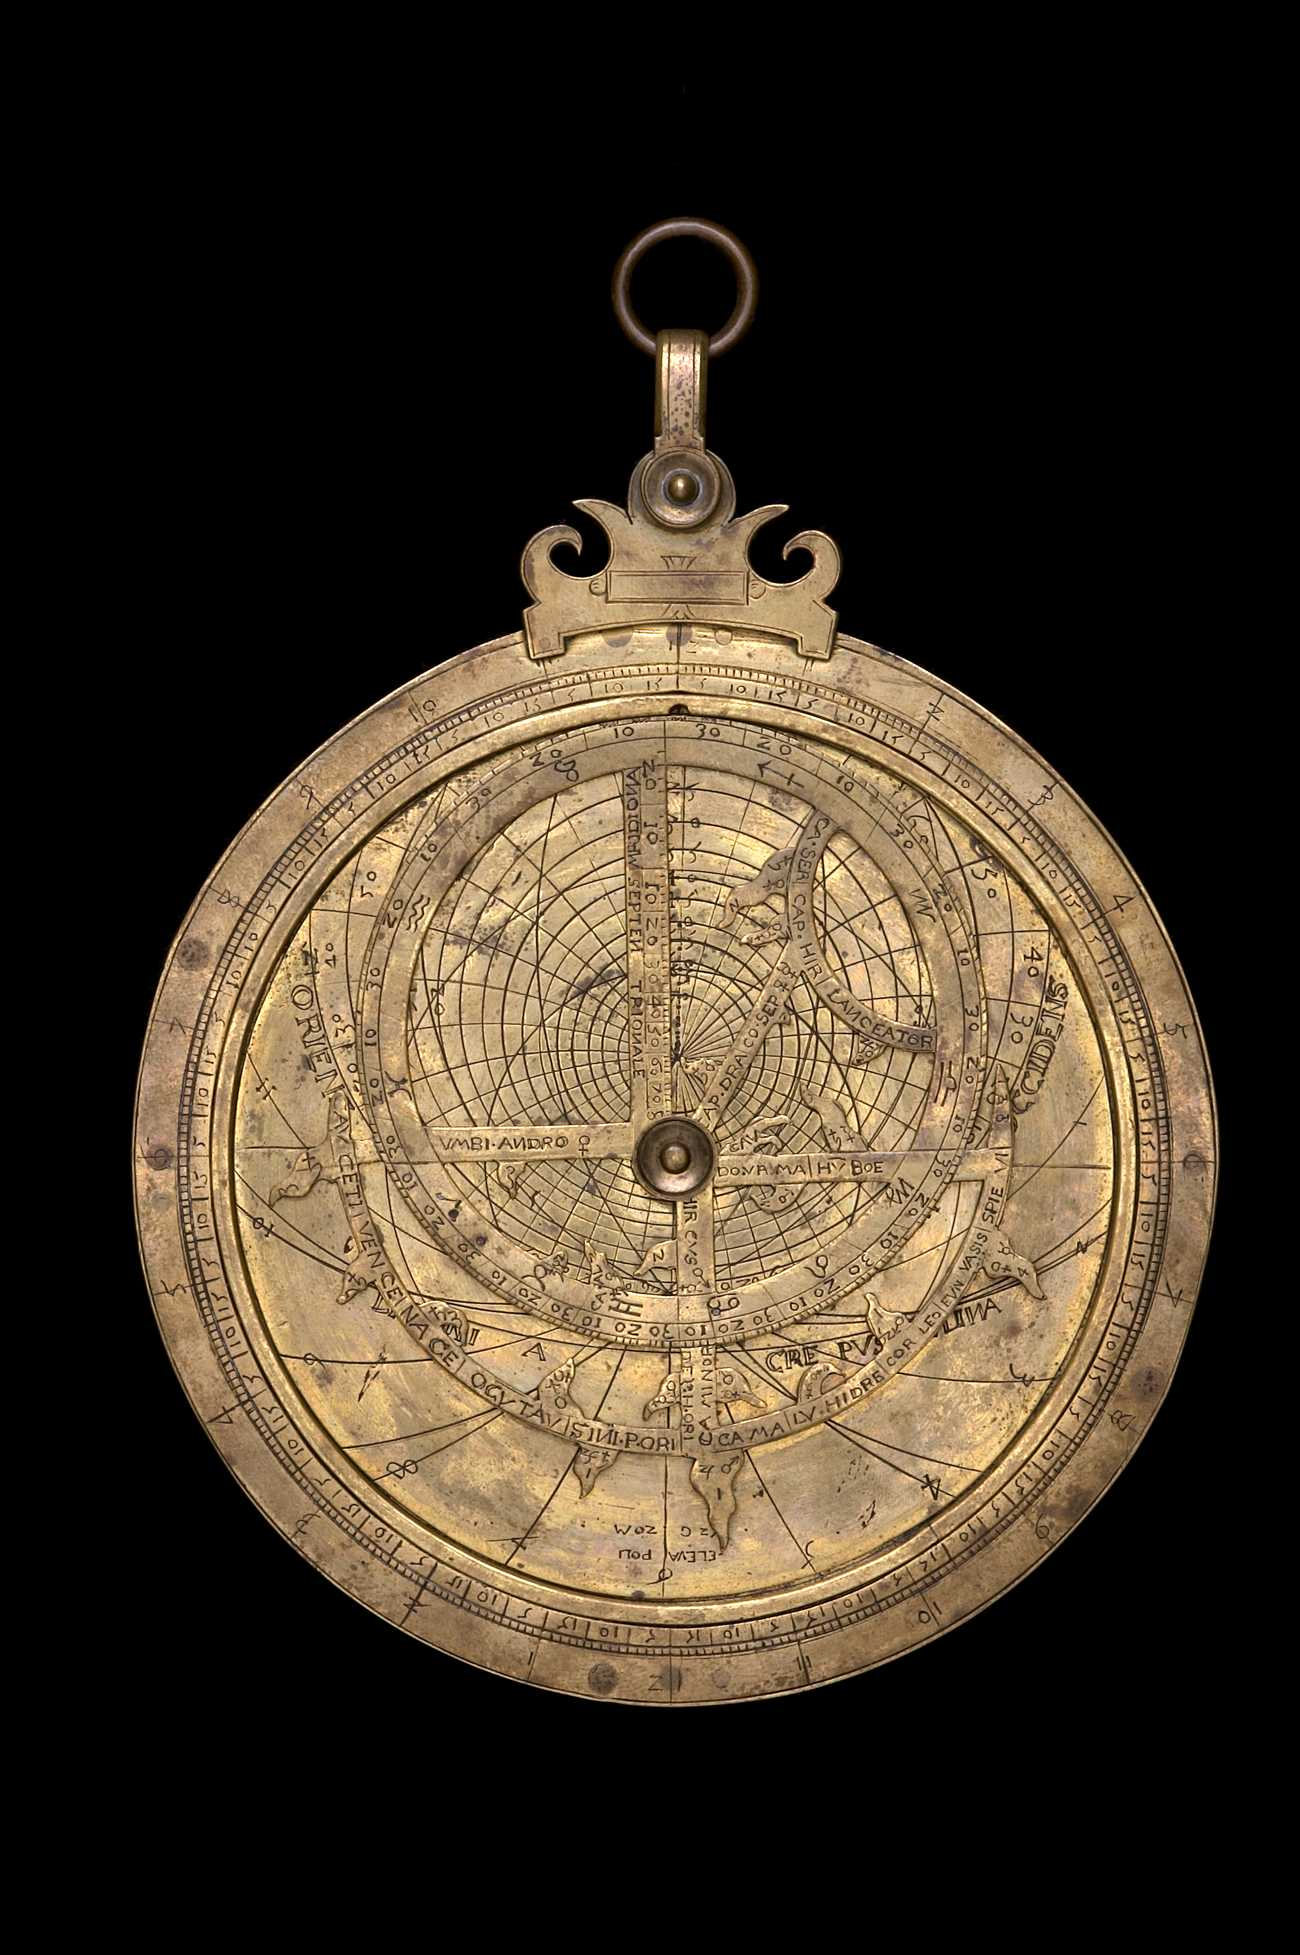 Astrolabe Image Report (inventory Number 39887